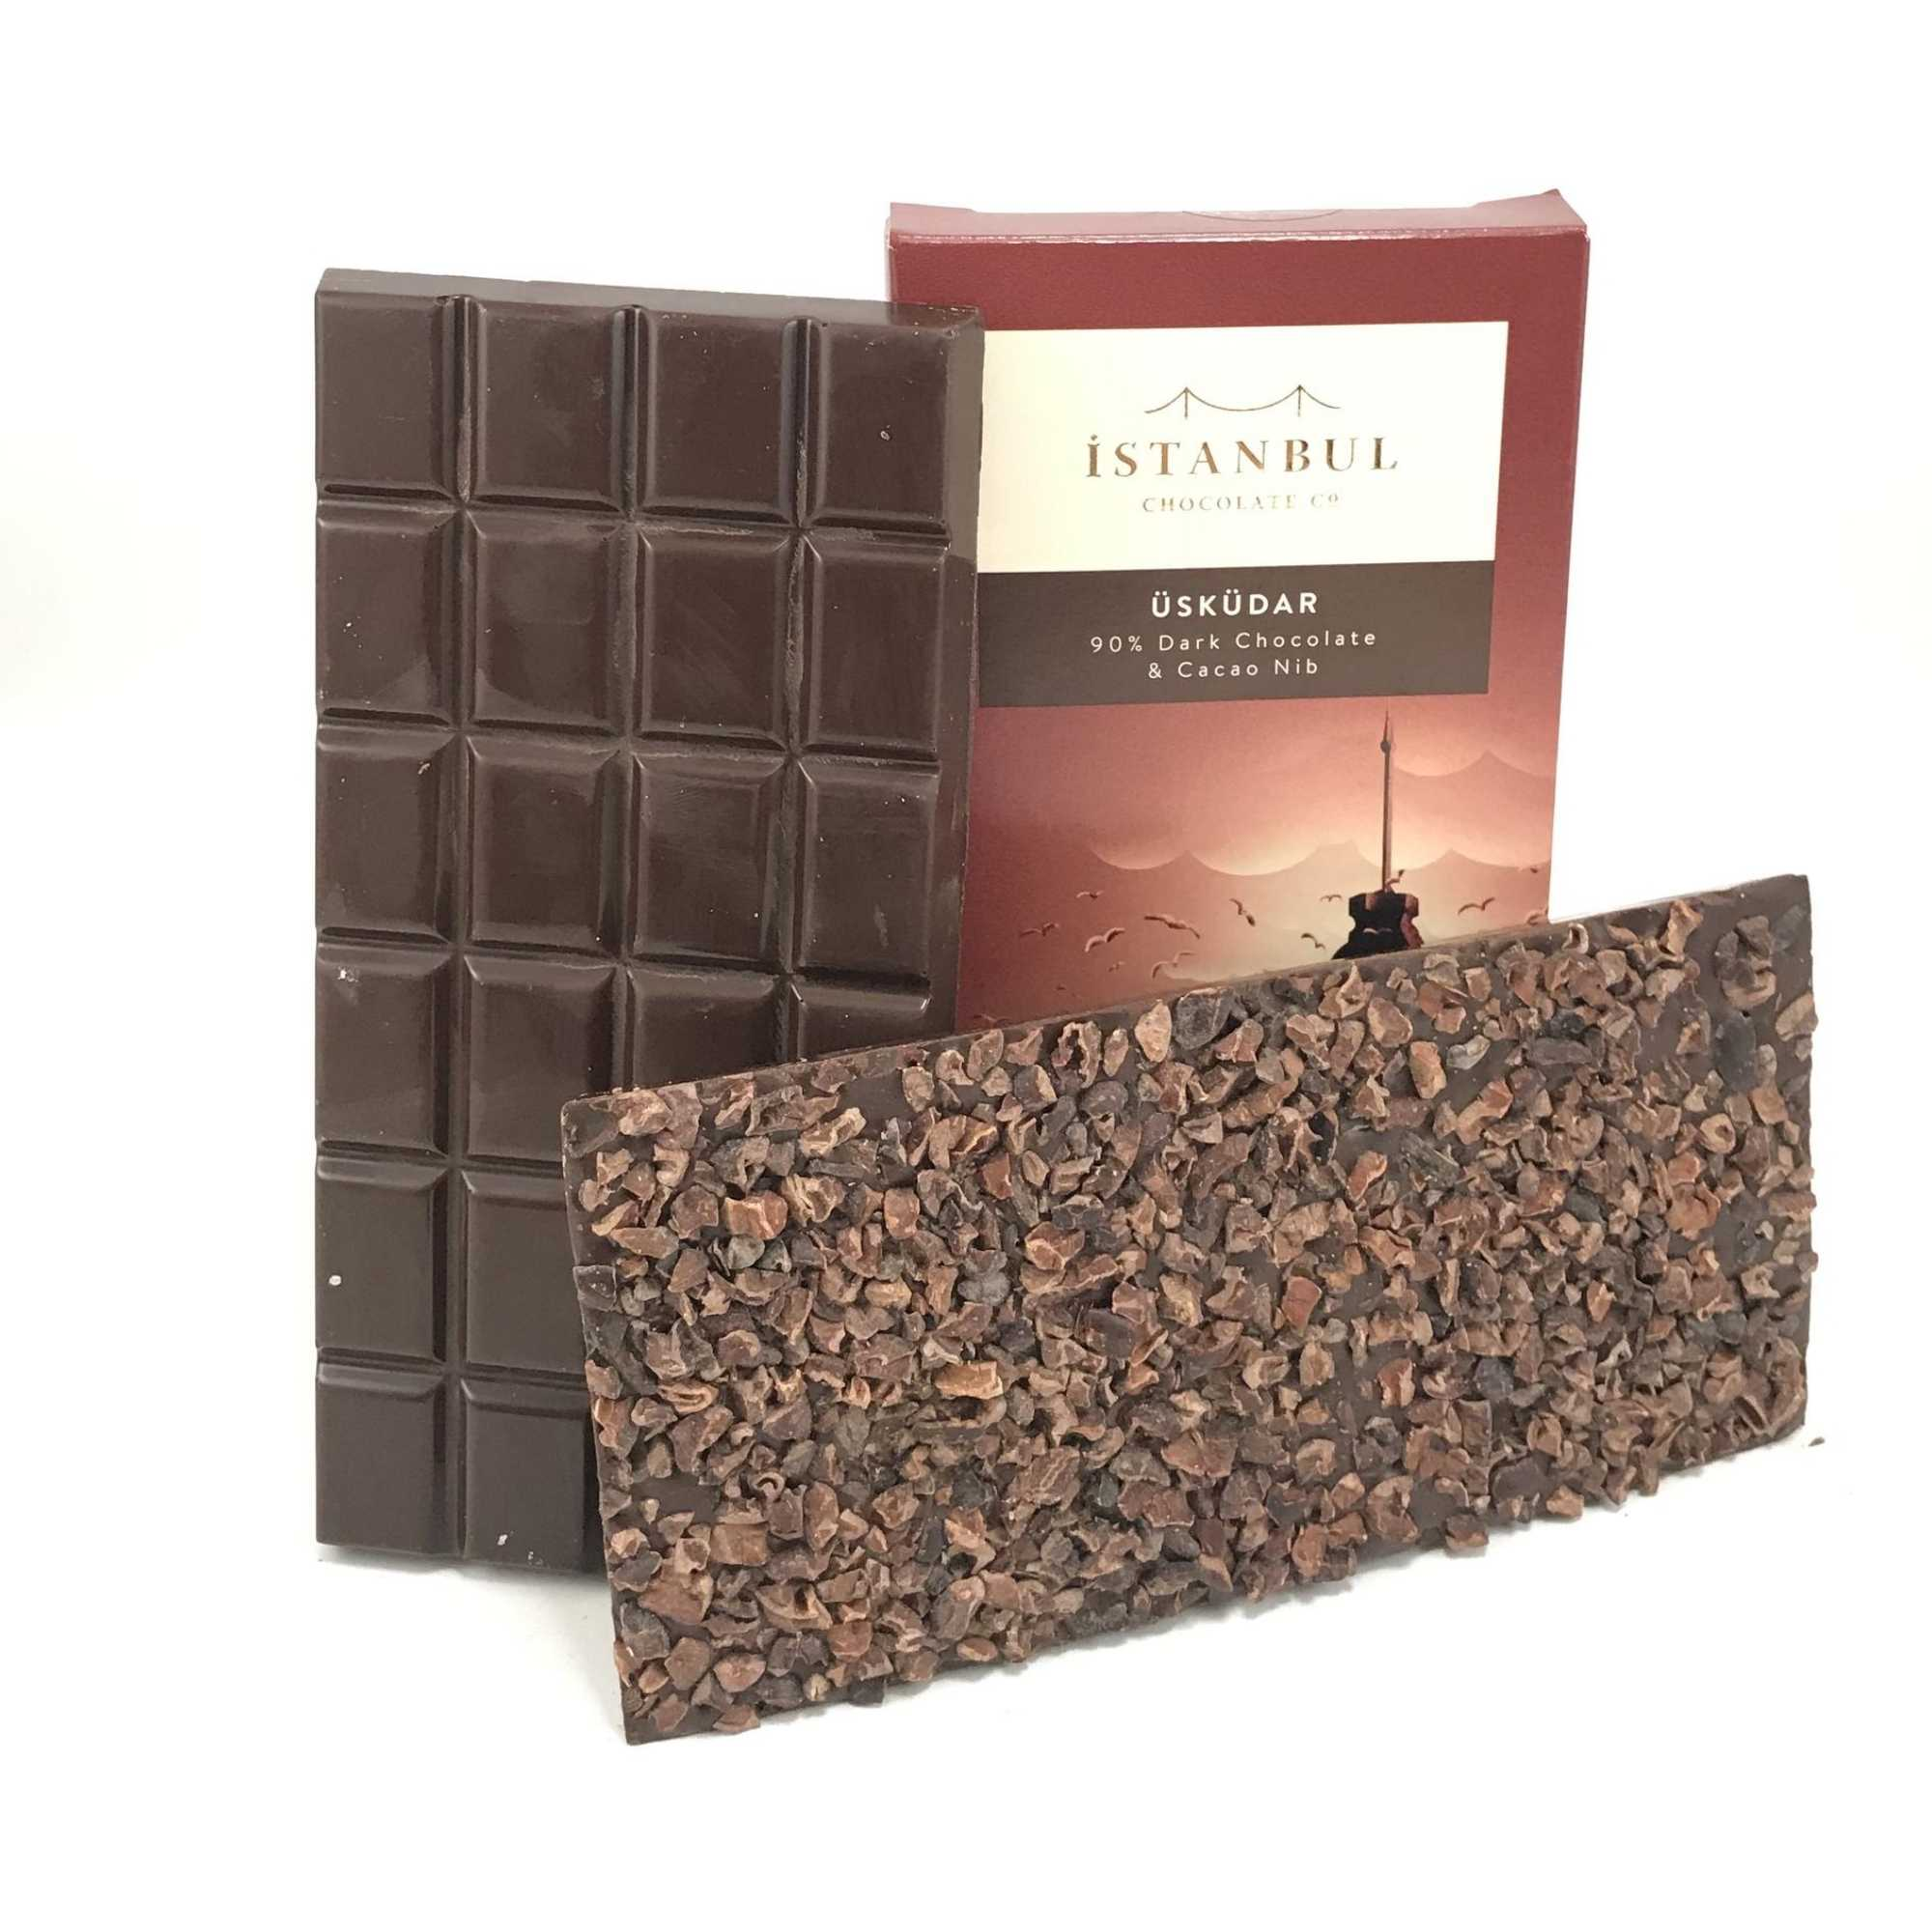 Istanbul Chocolate Uskudar 90% Dark Chocolate & Cacao Nib 100 Gr